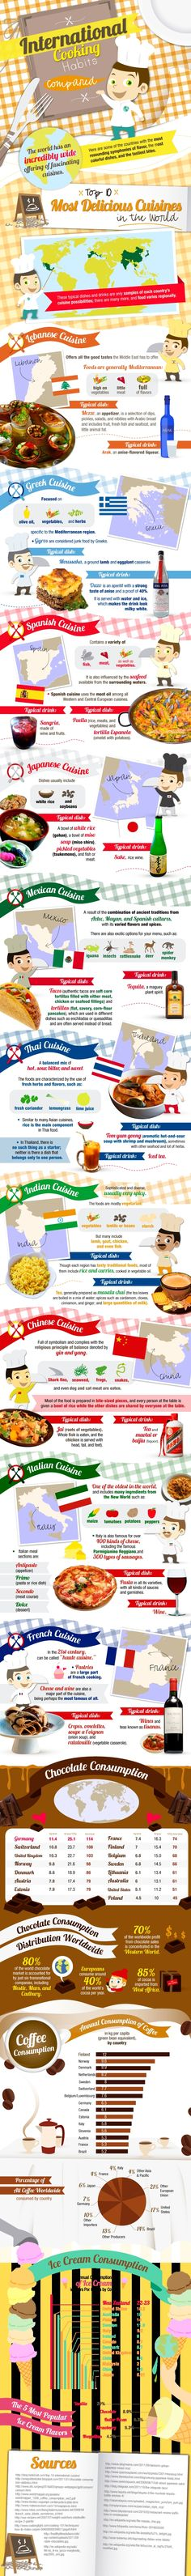 International Cooking Habits Compared [Infographic]